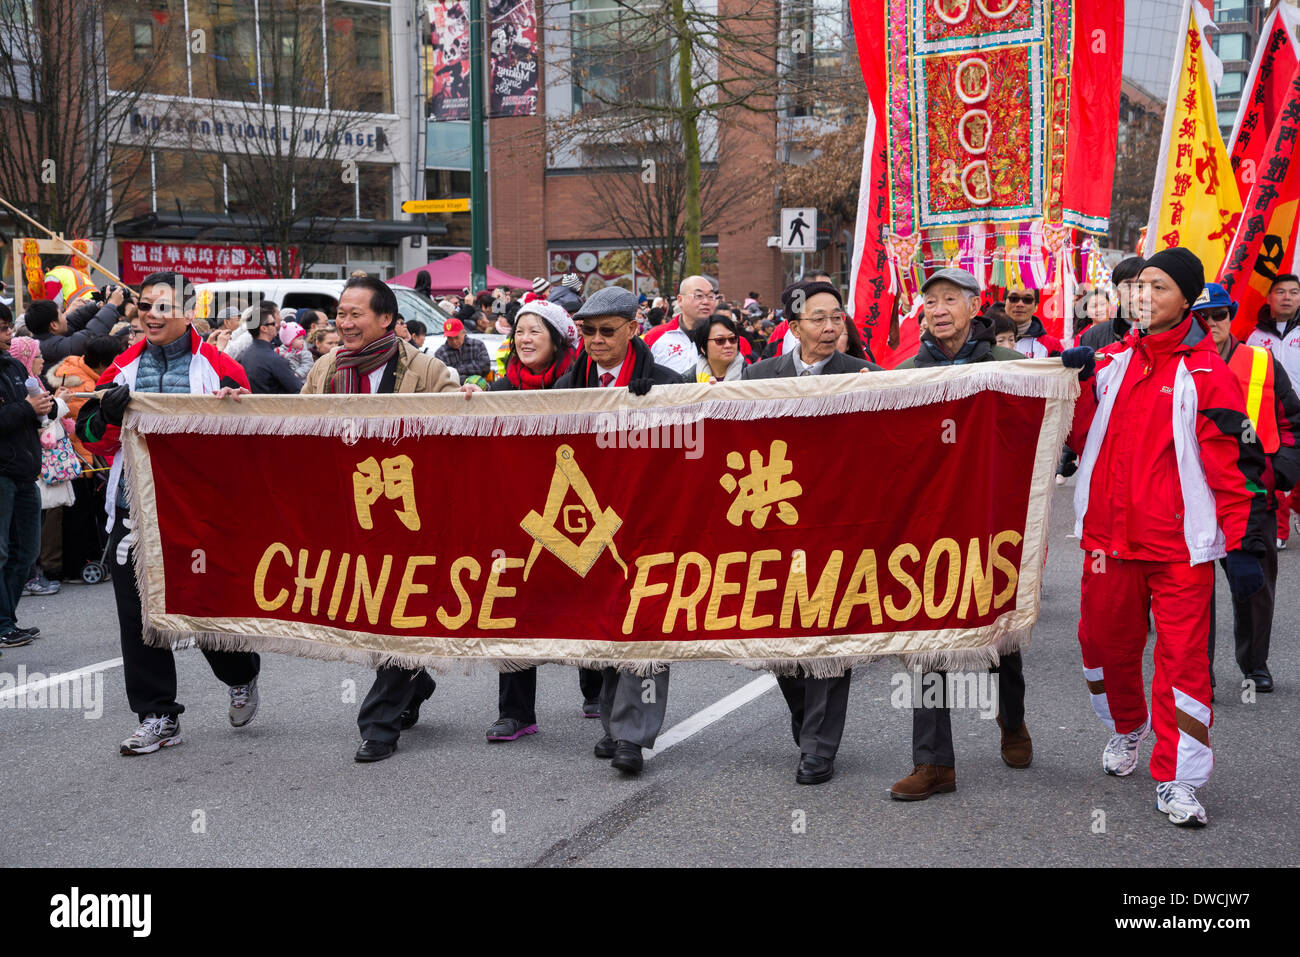 Chinese Freemasons, New Year Parade, Vancouver, British Columbia, Canada Stock Photo